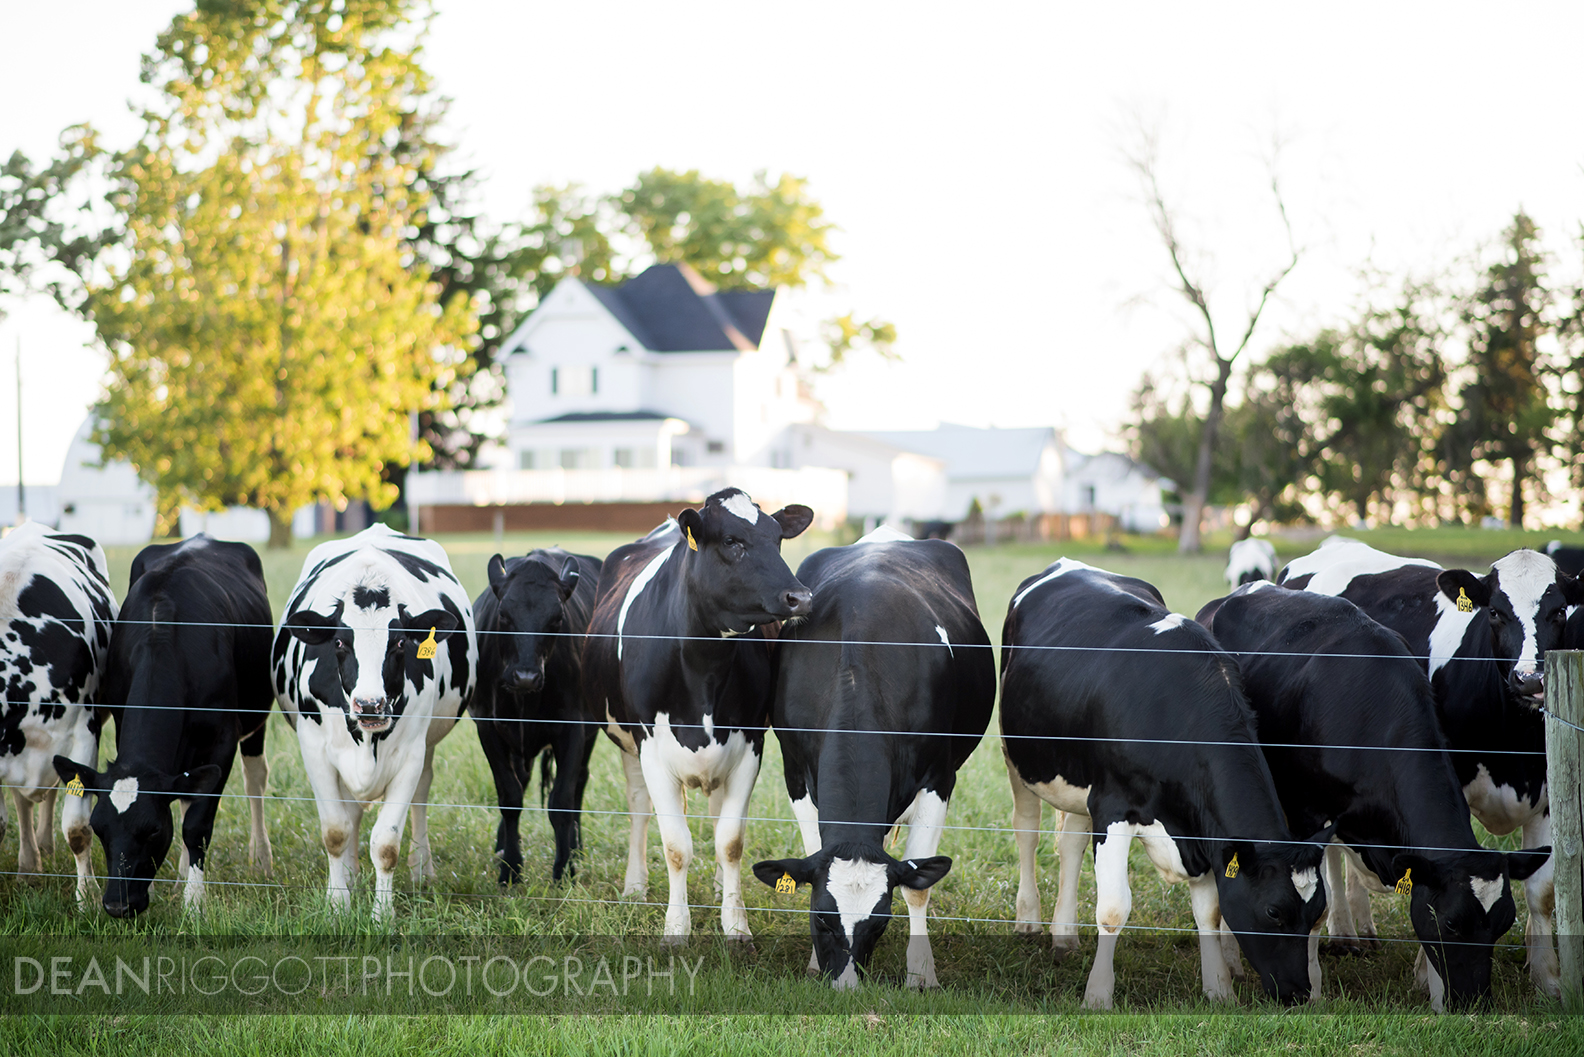 Cows in a pasture on a farm in southeastern Minnesota near Fremont.